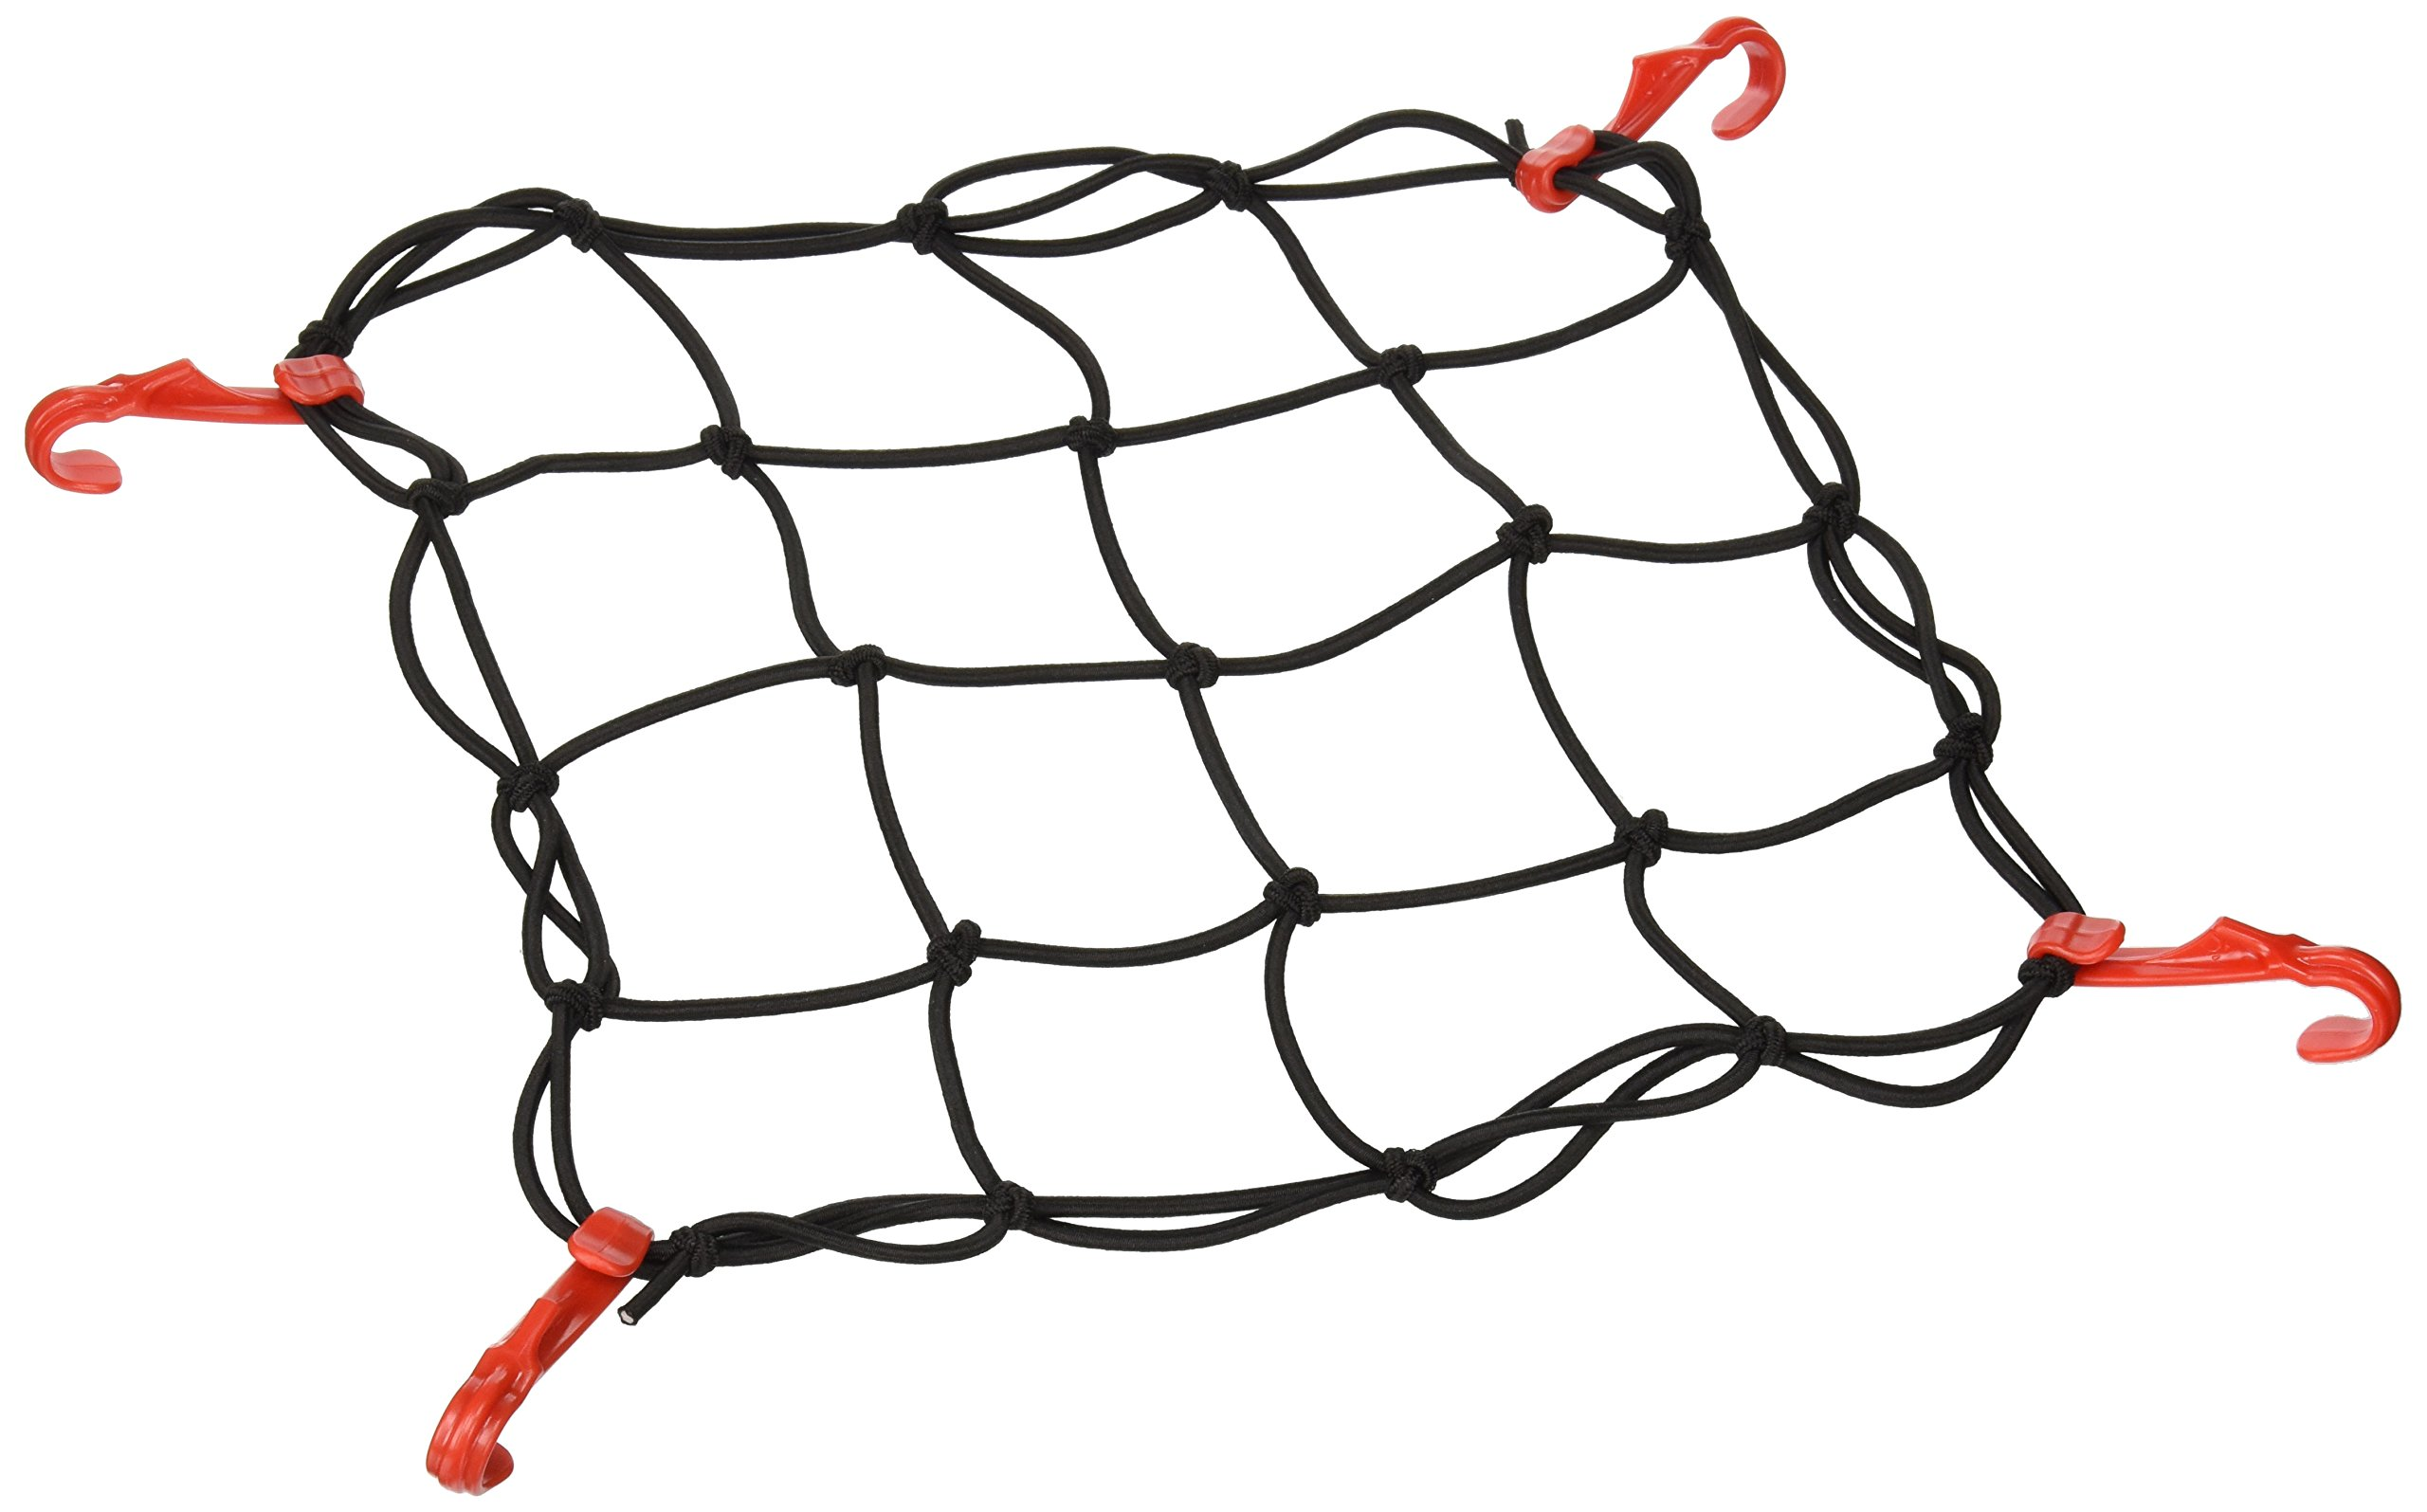 """SUV No Gaps Securing Cargo Nets to Rooftop Carrier Roof Rack Trunk Organizer Net Mesh is Heavy Duty 5mm Thick 2/""""x2/"""" Cargo Hitch 22/""""x38/"""" Roof Rack Net Rocket Straps Bungee Cord Cargo Net"""